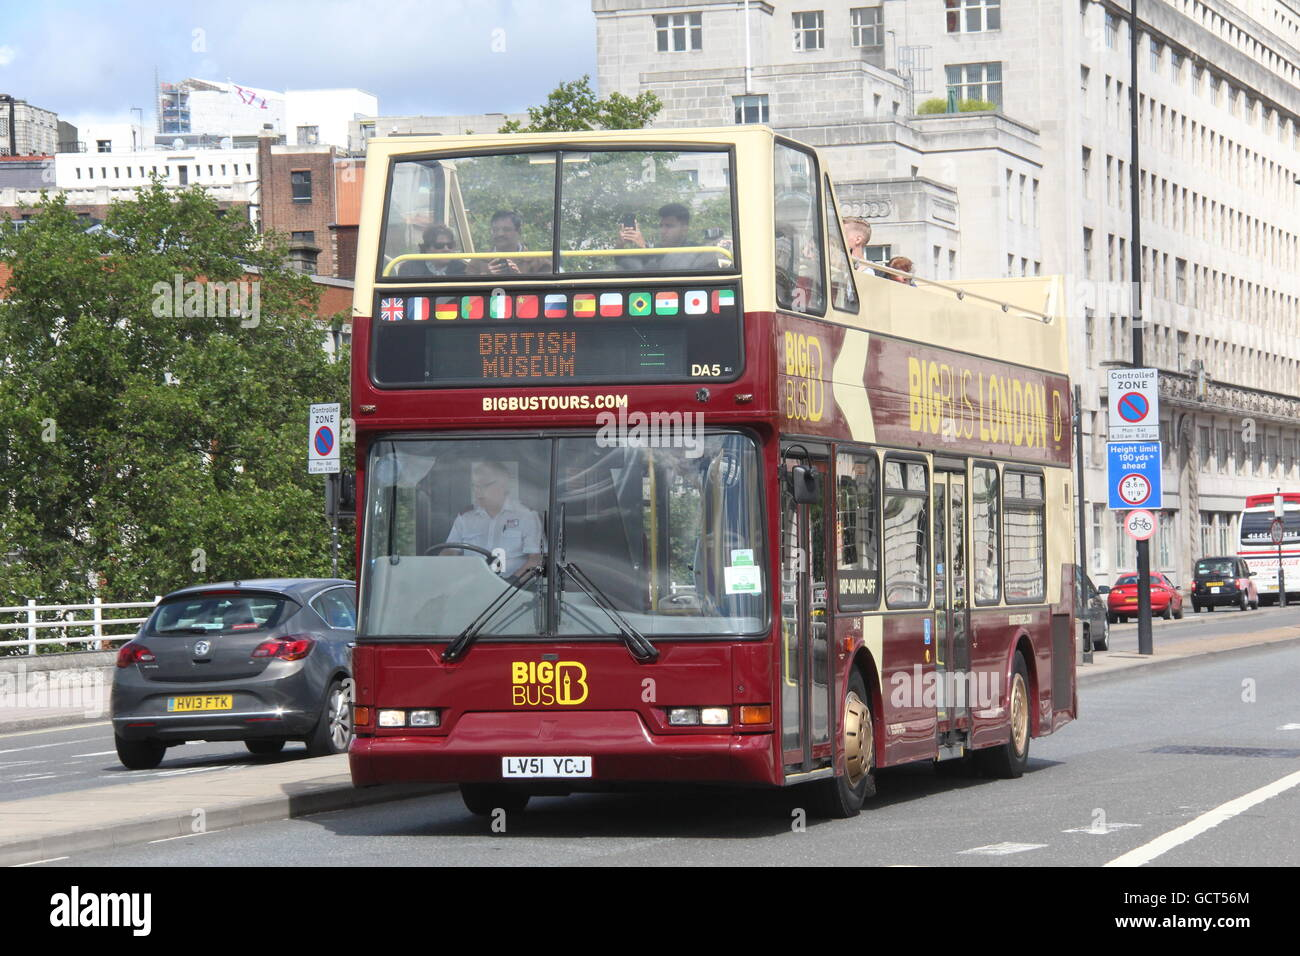 a sunny nearside view of a big bus London sightseeing bus - Stock Image